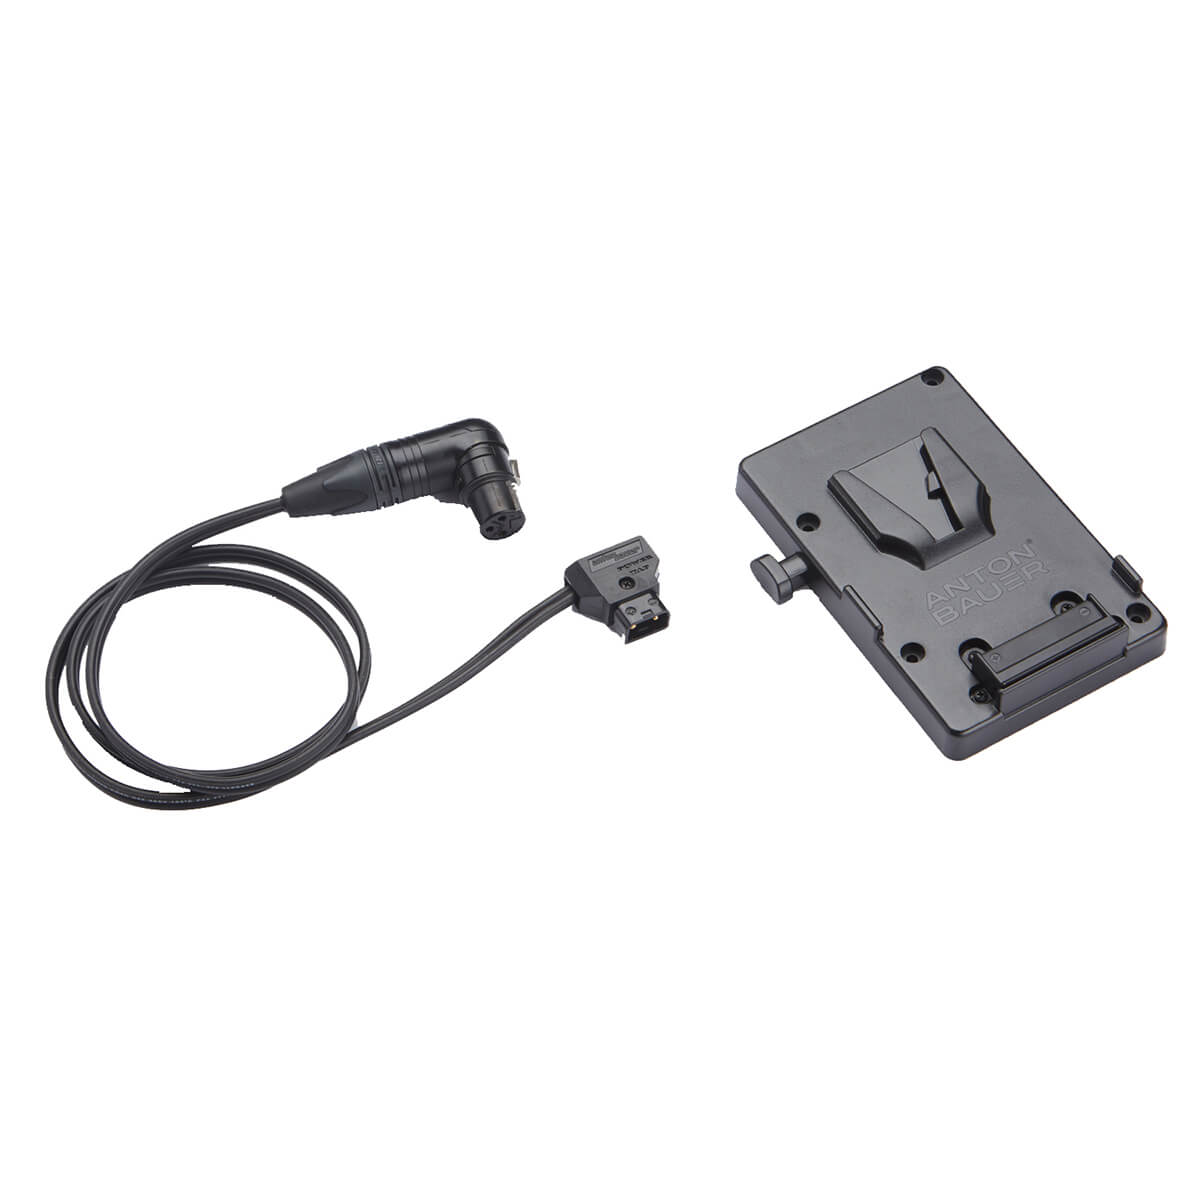 935-3201_image_4_battery-adapter-v-lock-mount.jpg